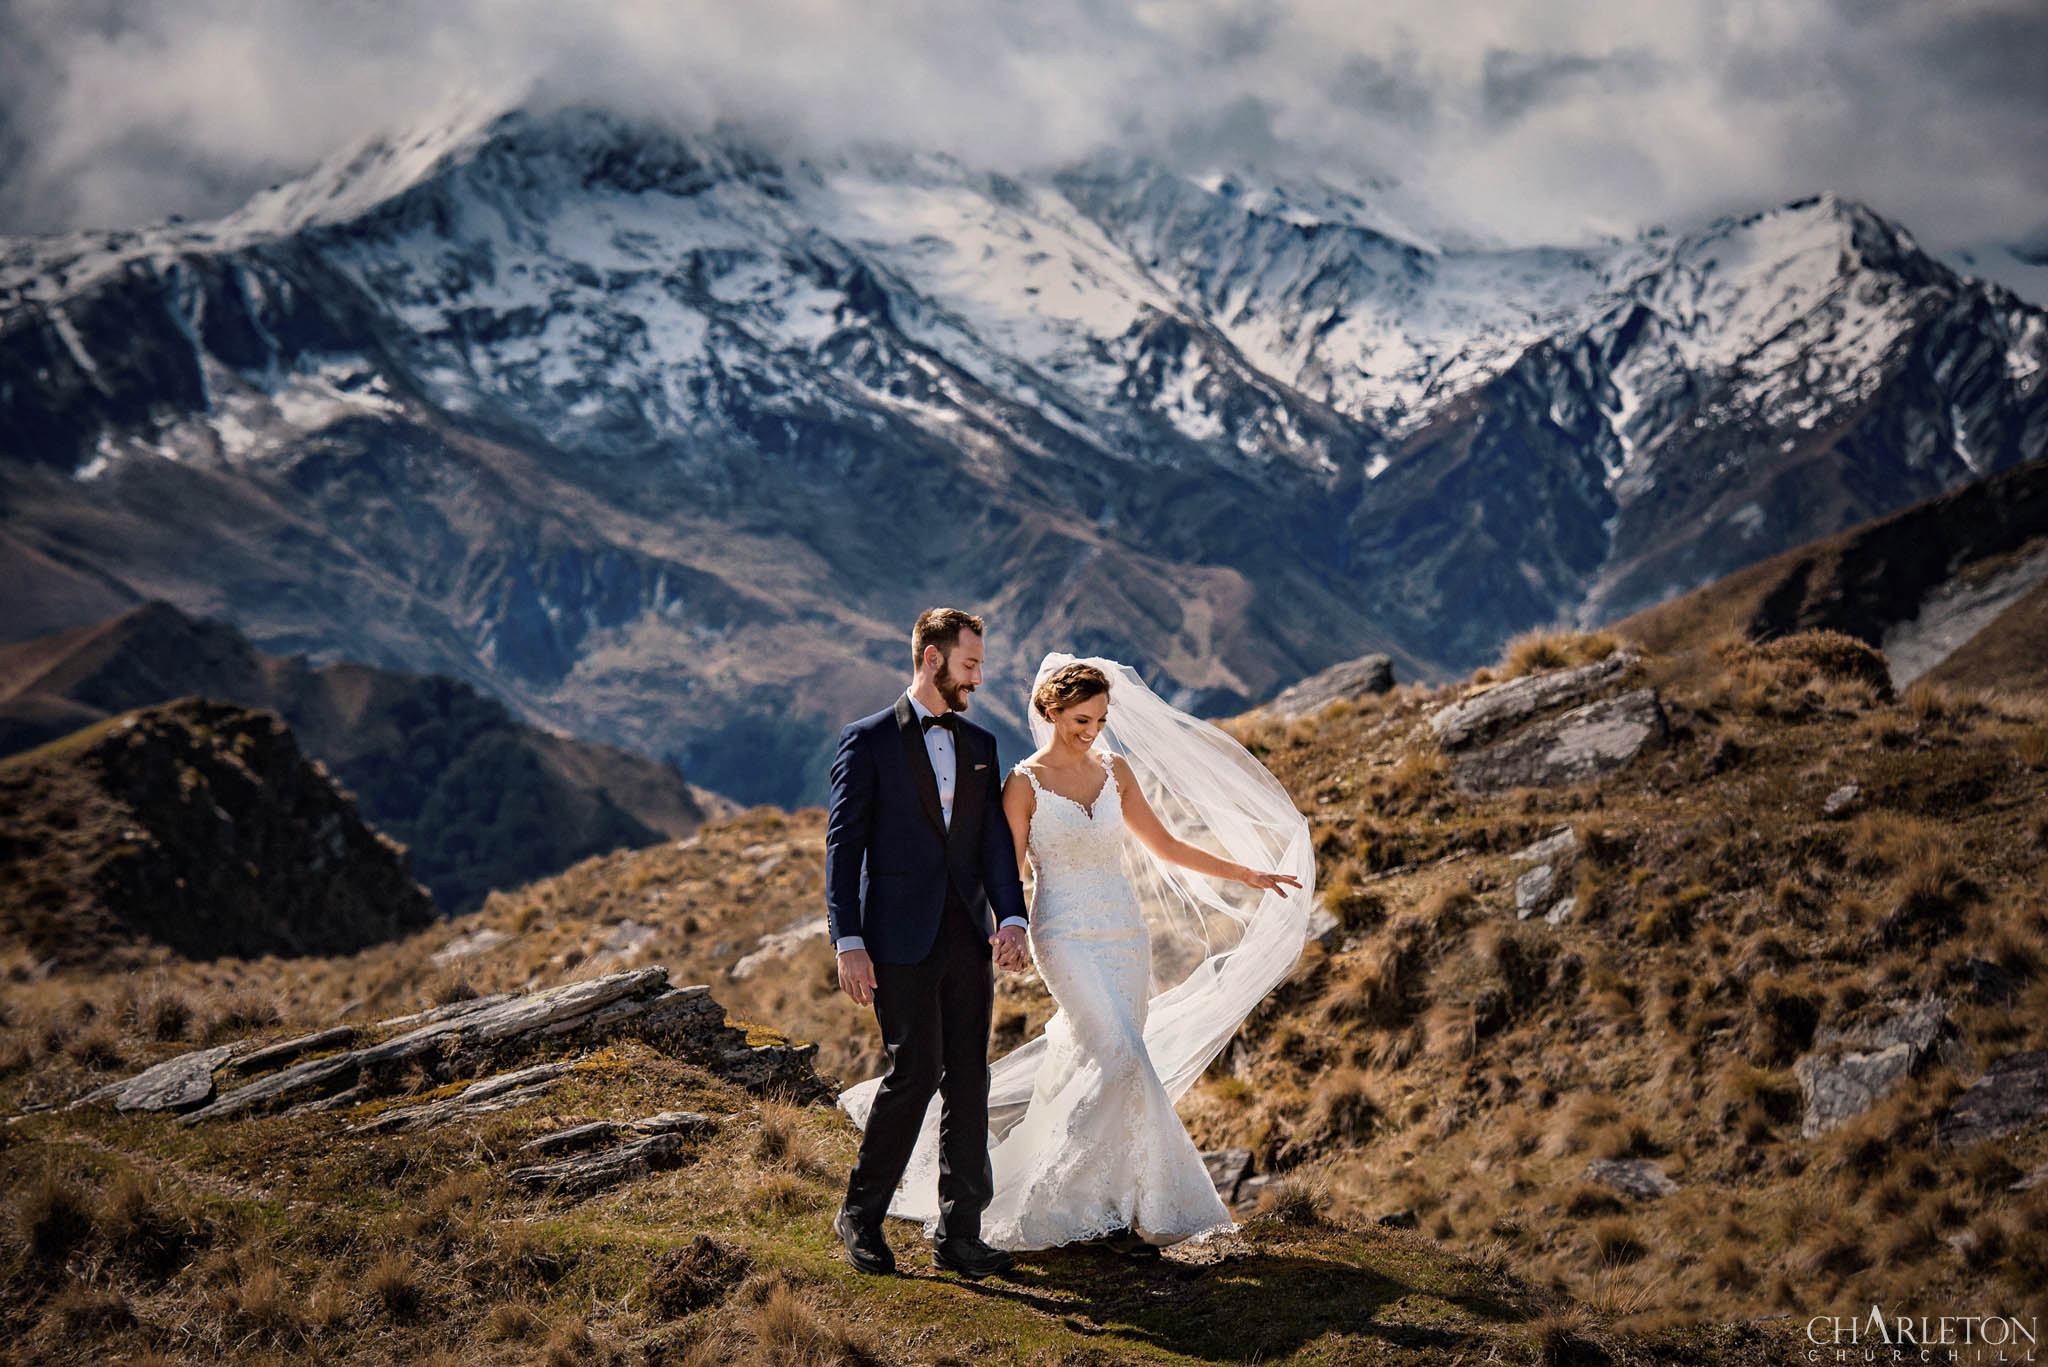 adventure elopement photographer in snow-capped mountains with eloped couple